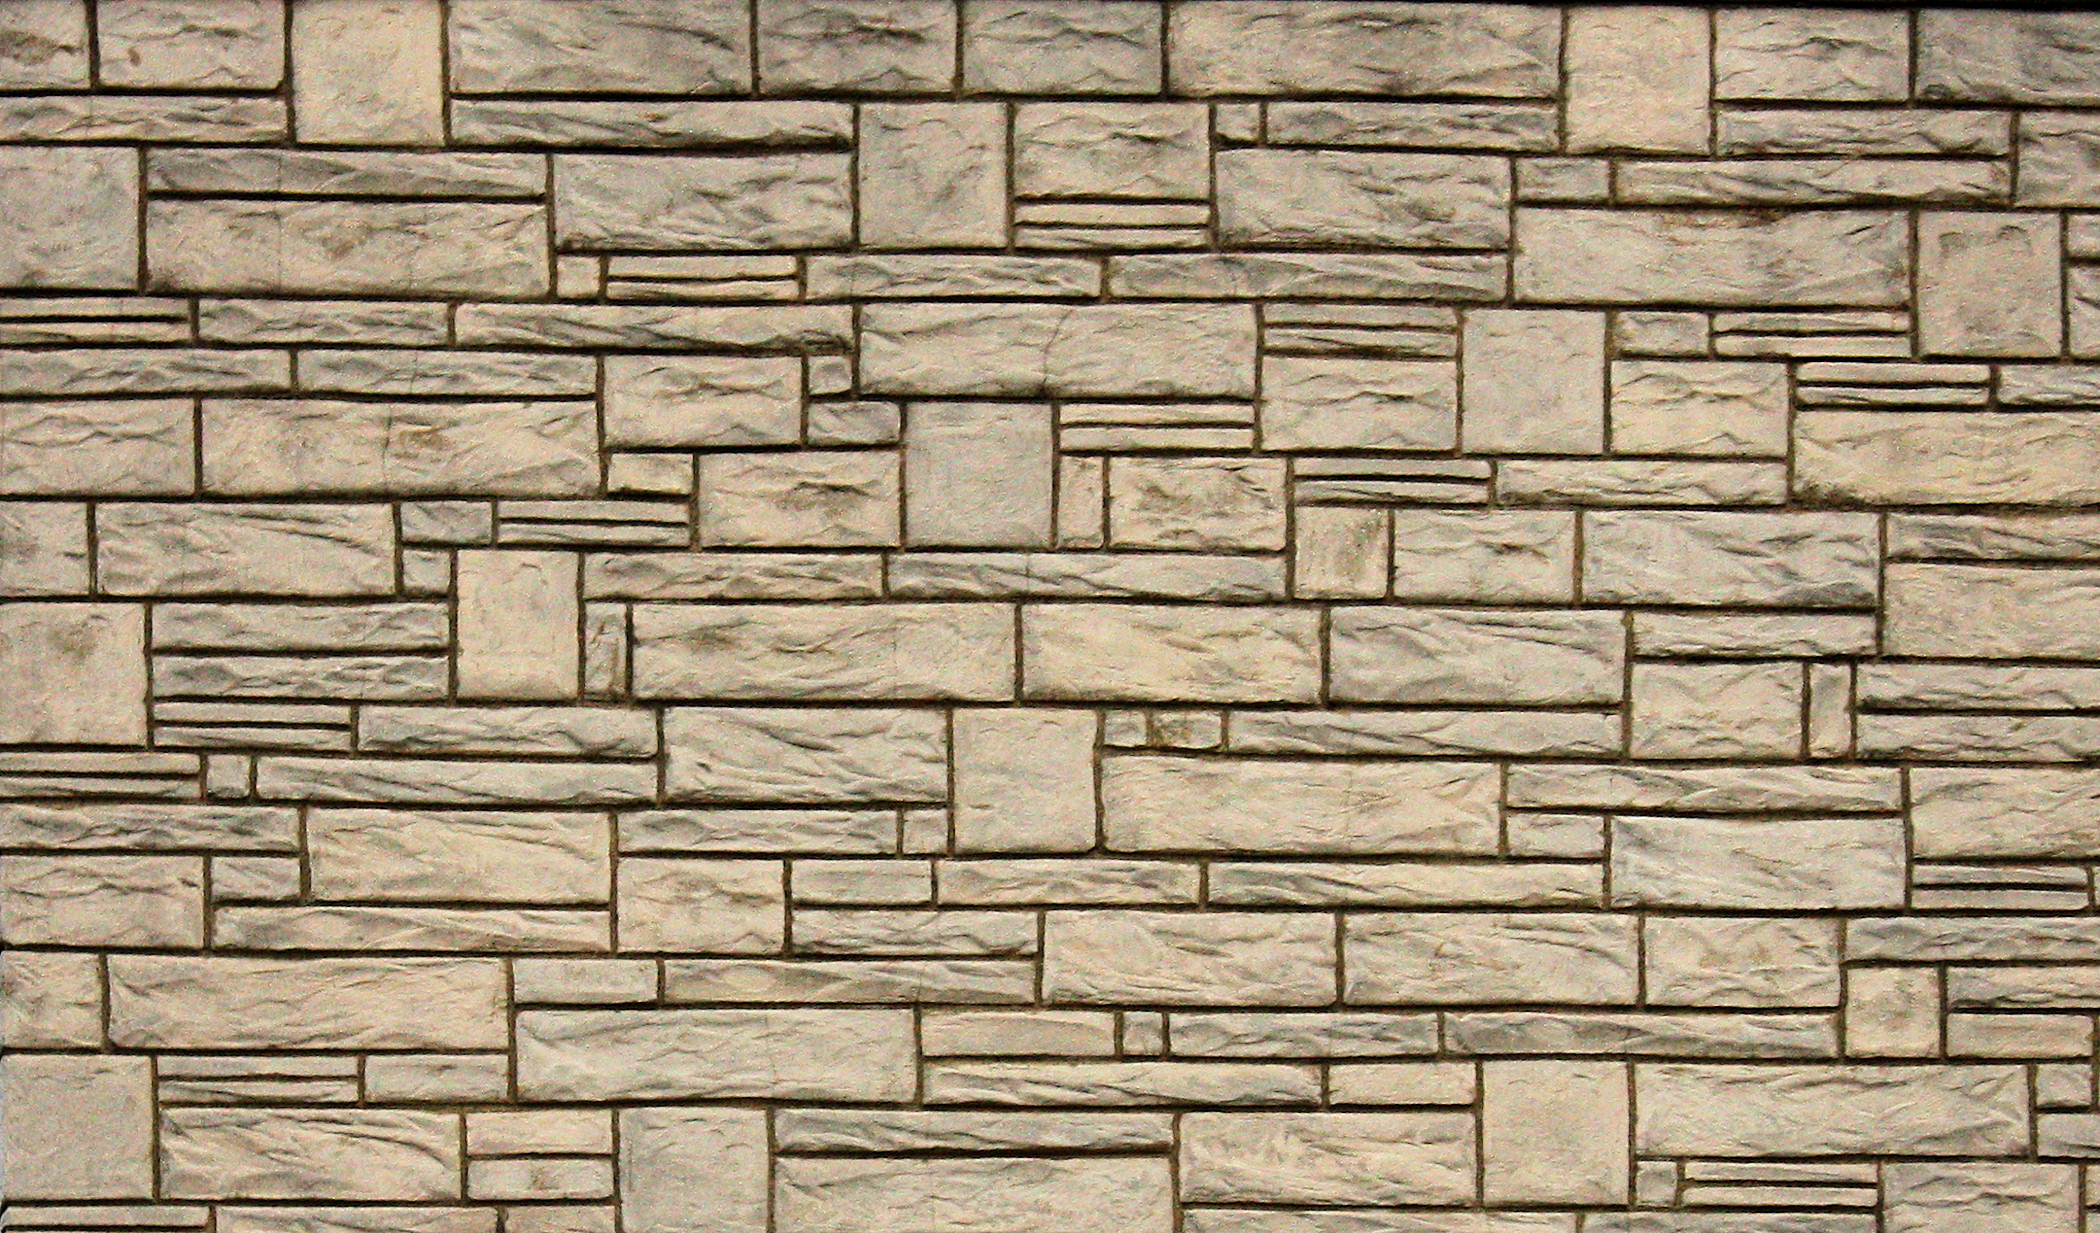 stone wall background stone wallpaper wallpaper stone stonewall stone 2100x1233